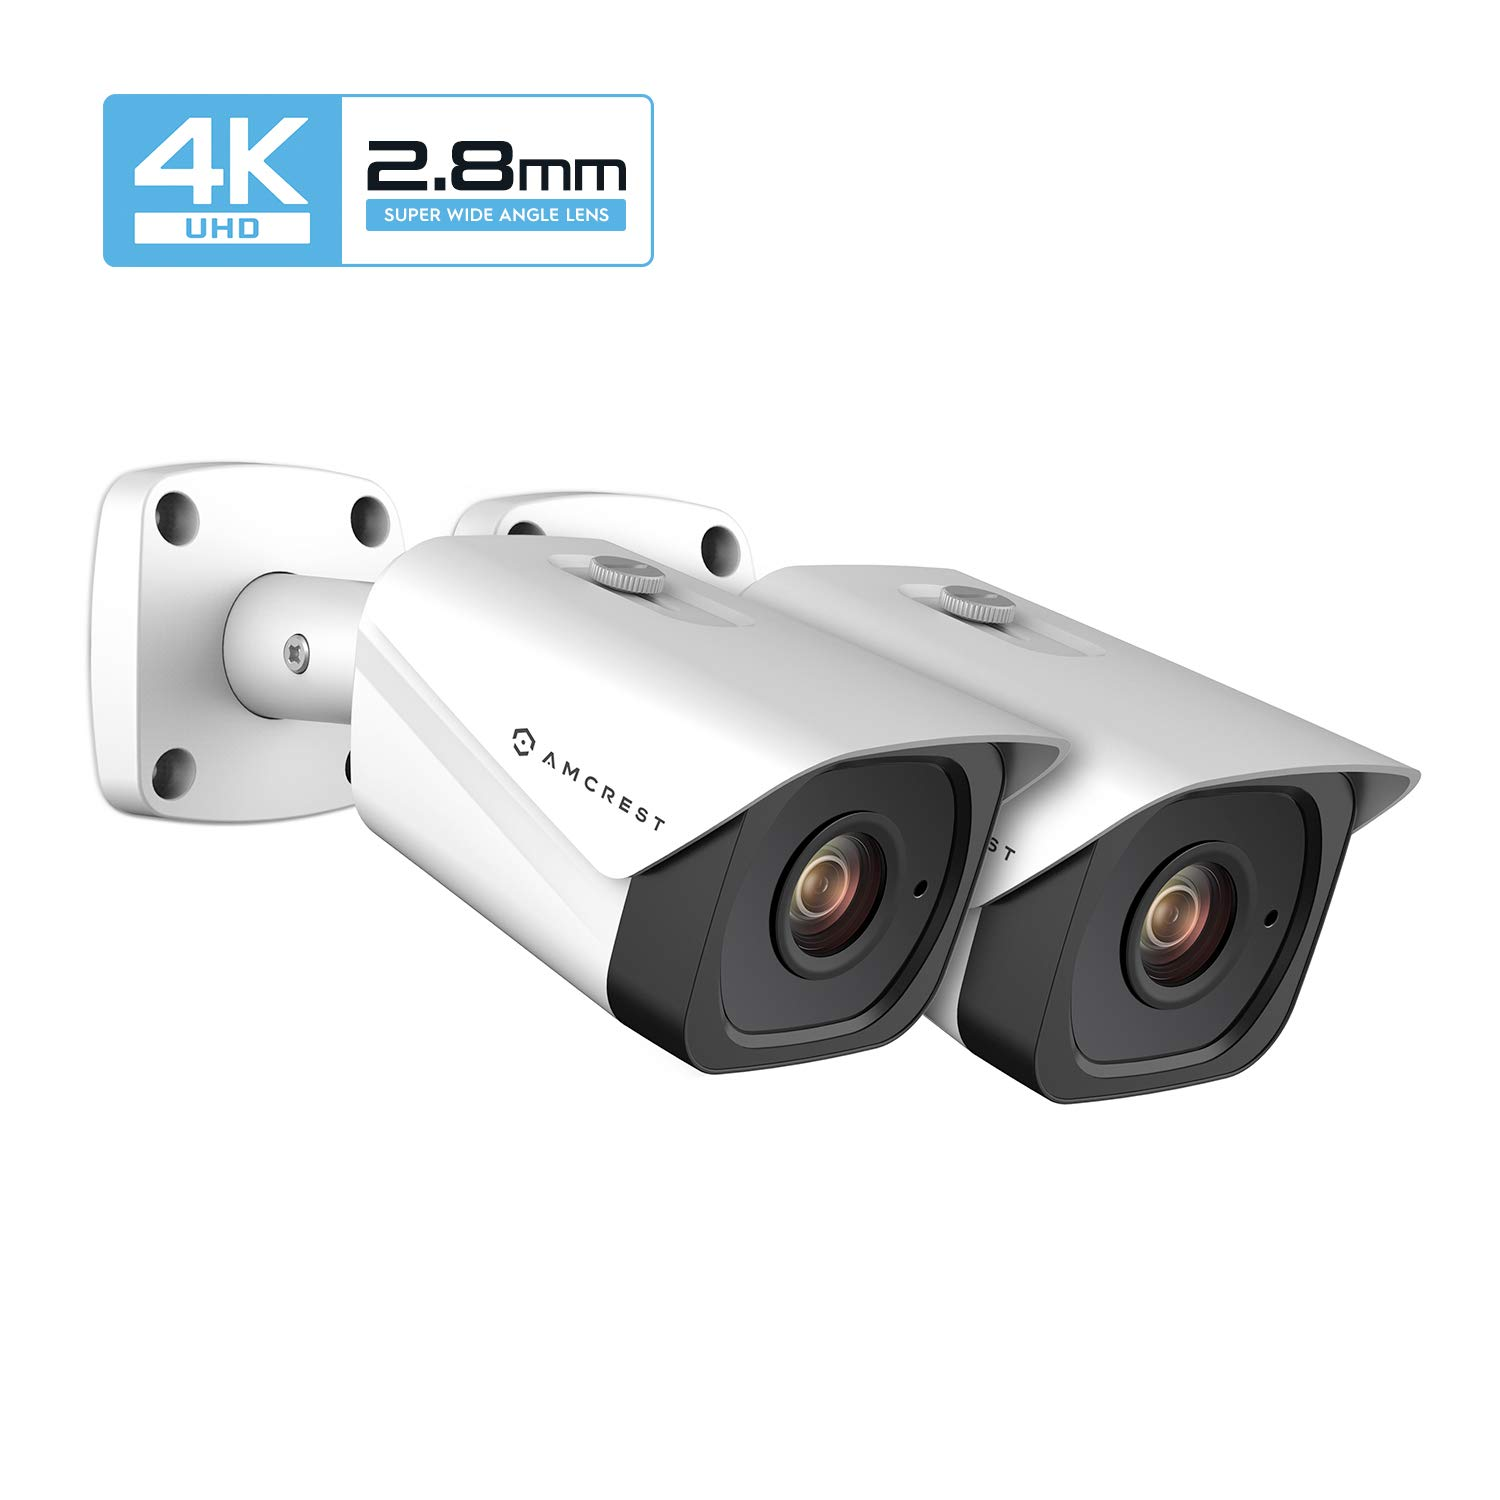 2-Pack Amcrest UltraHD 4K 8MP Bullet POE IP Camera, 3840×2160, 131ft NightVision, 2.8mm Lens, IP67 Weatherproof, MicroSD Recording, White 2PACK-IP8M-2496EW